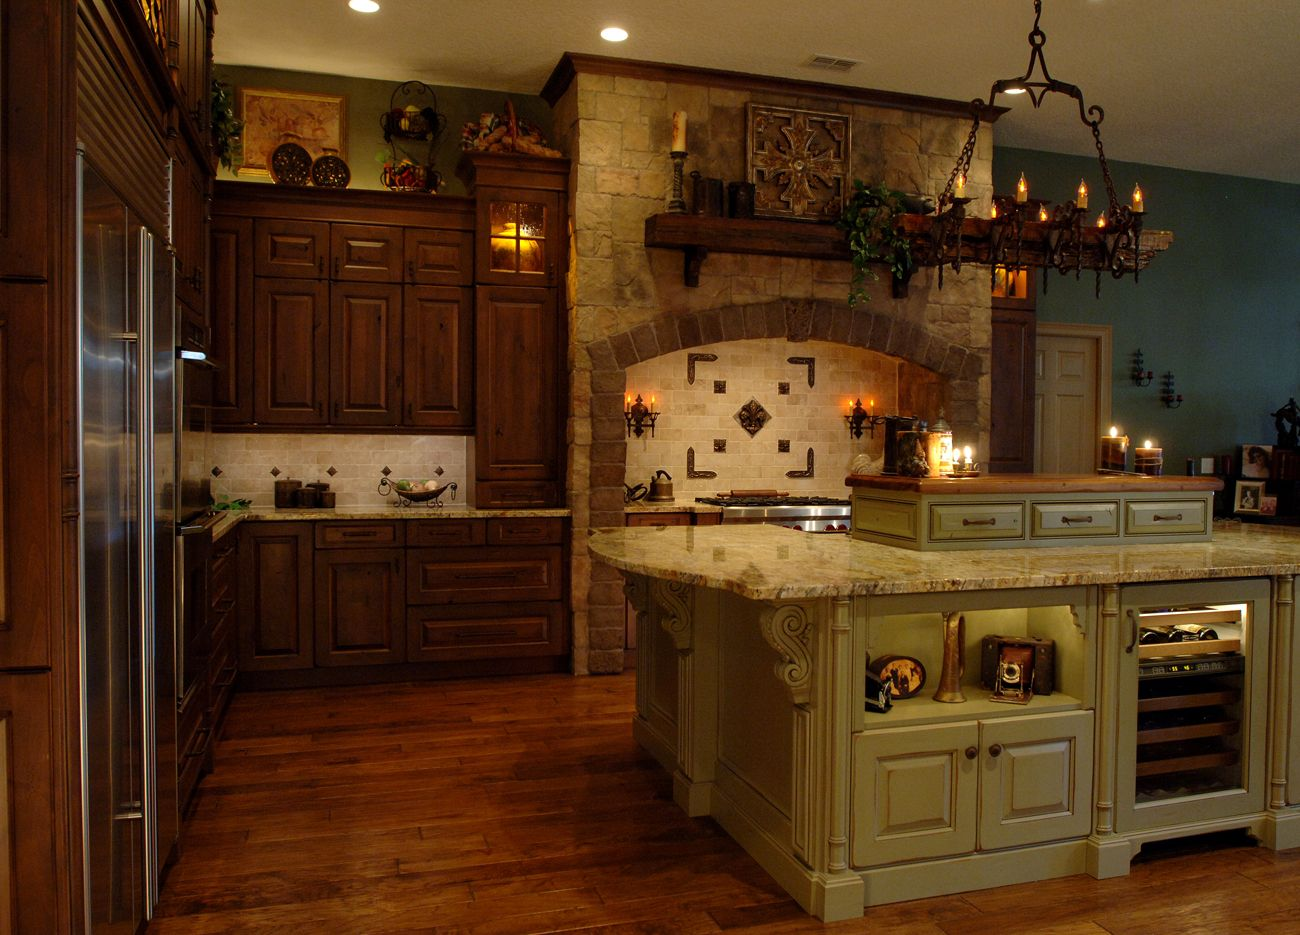 This old world kitchens looks like it's straight out of a ...